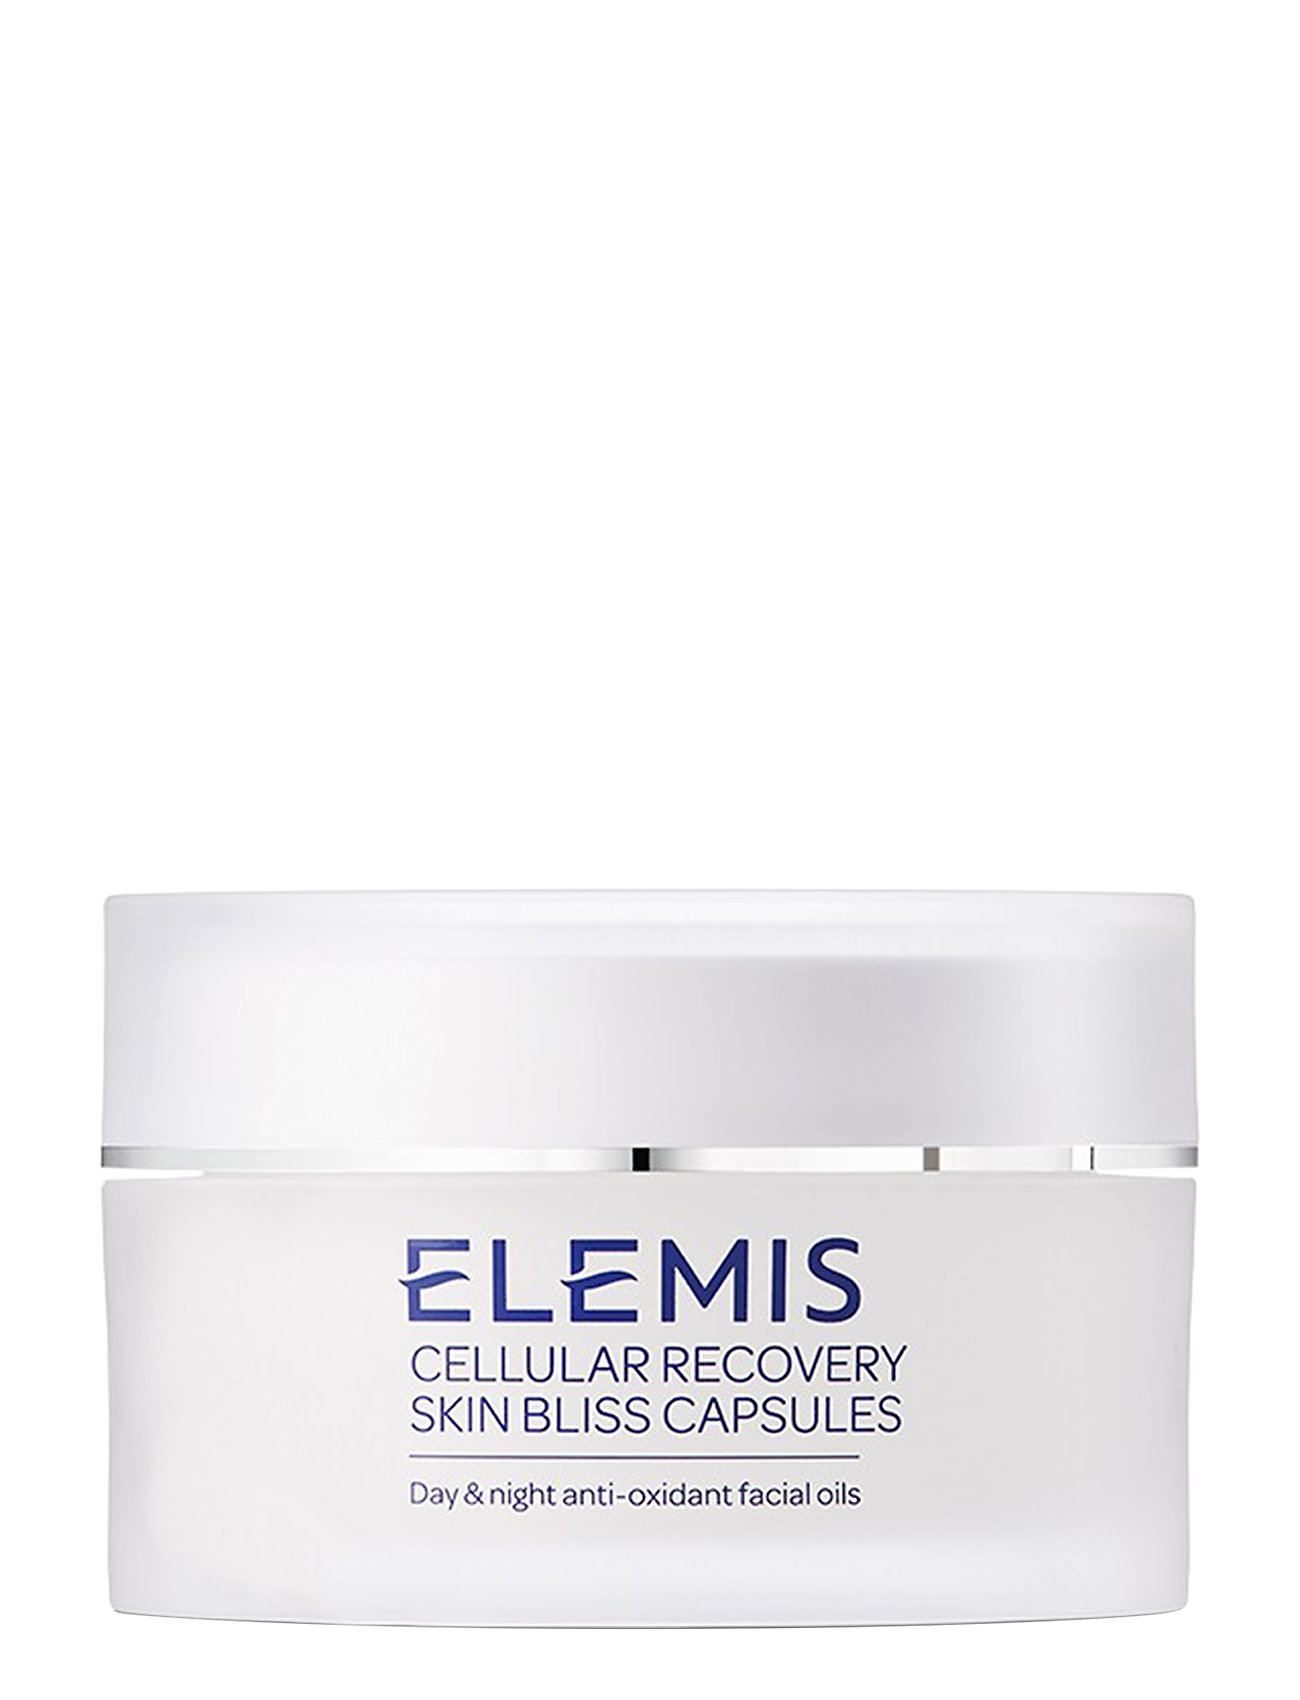 Elemis Cellular Recovery Skin Bliss Capsules - CLEAR